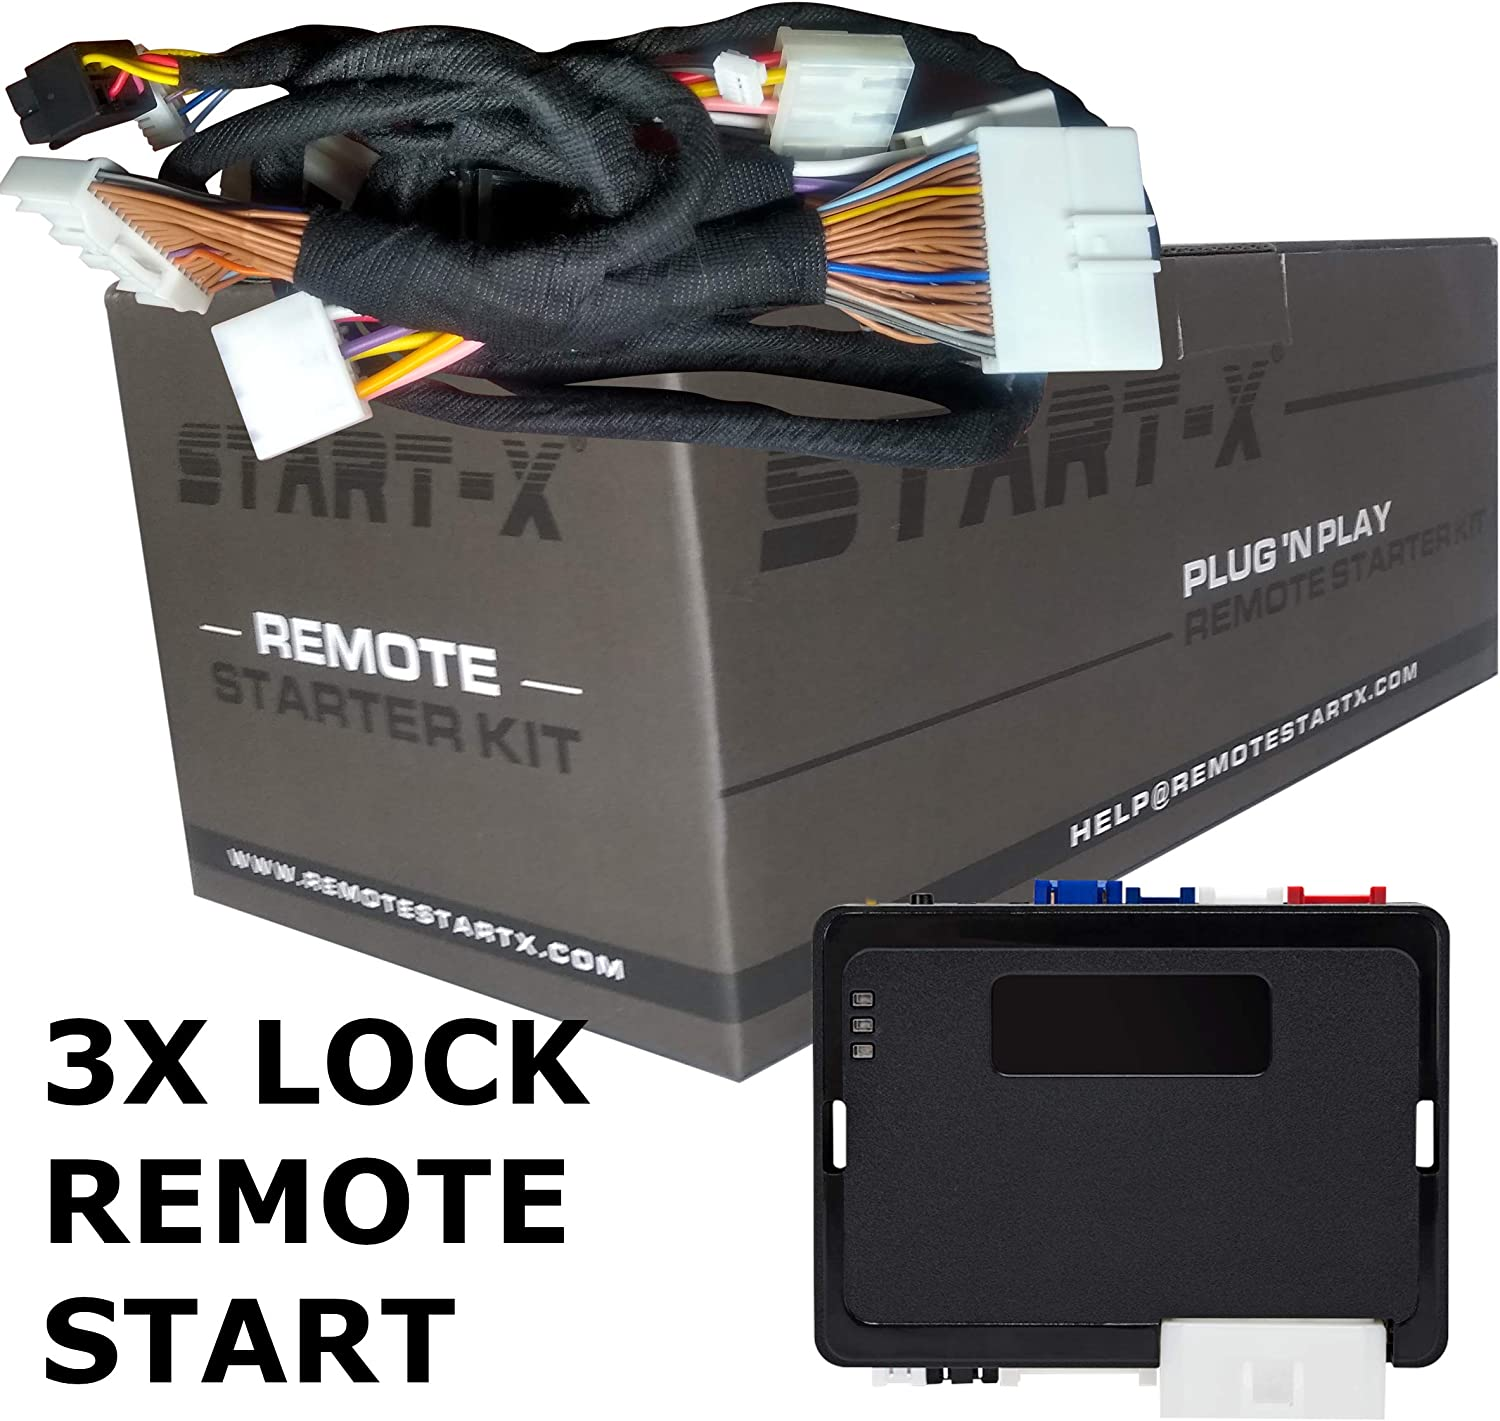 Start-X Remote Starter for Nissan Frontier 2008-2019 10 Minute Install 3X Lock Remote Start Plug N Play